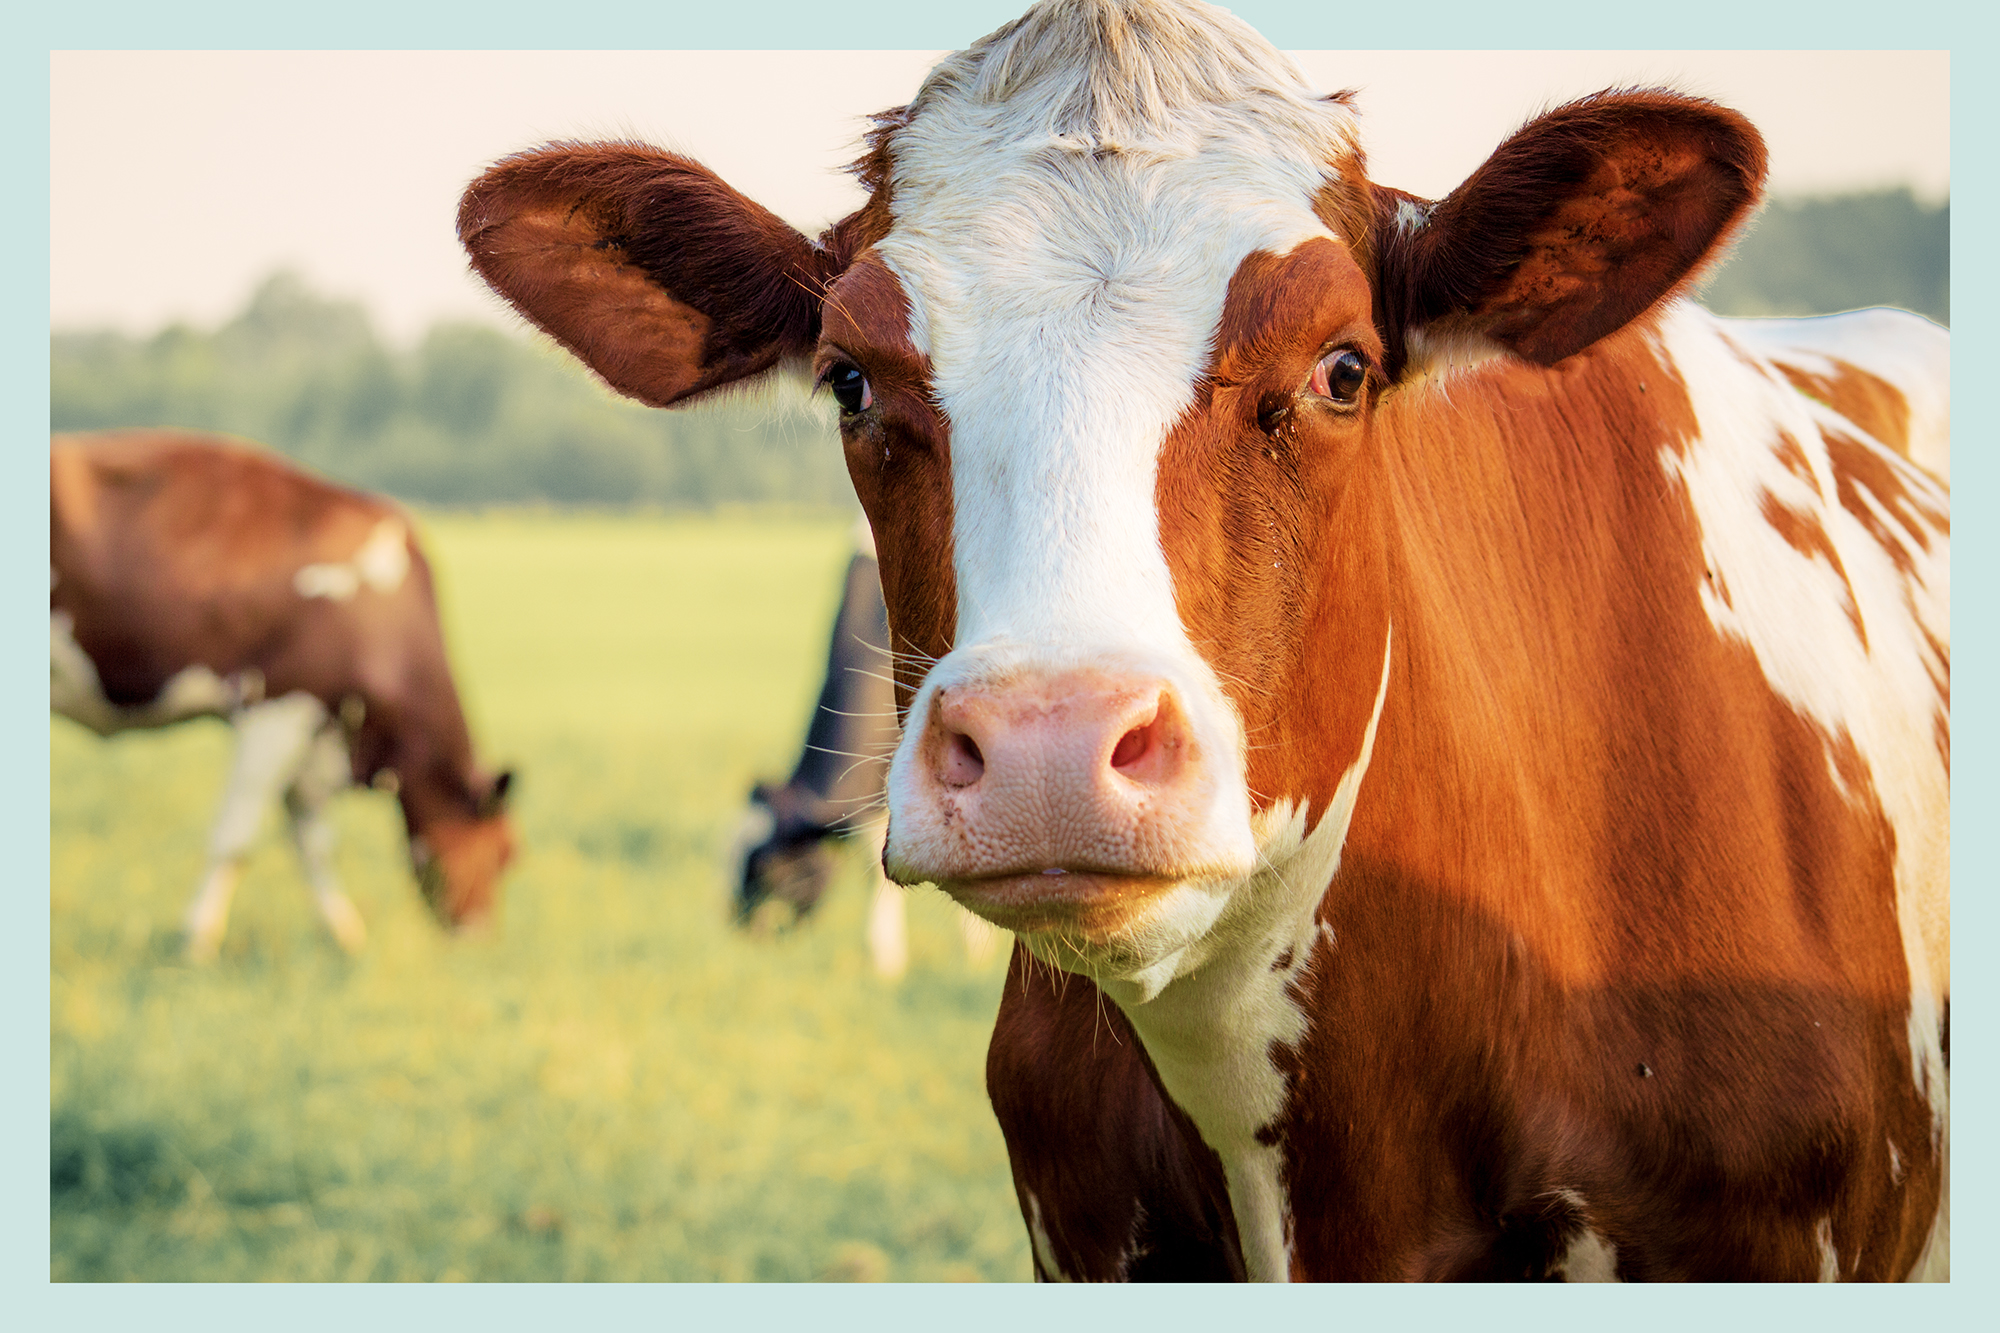 A portrait of a cow in a grassy field